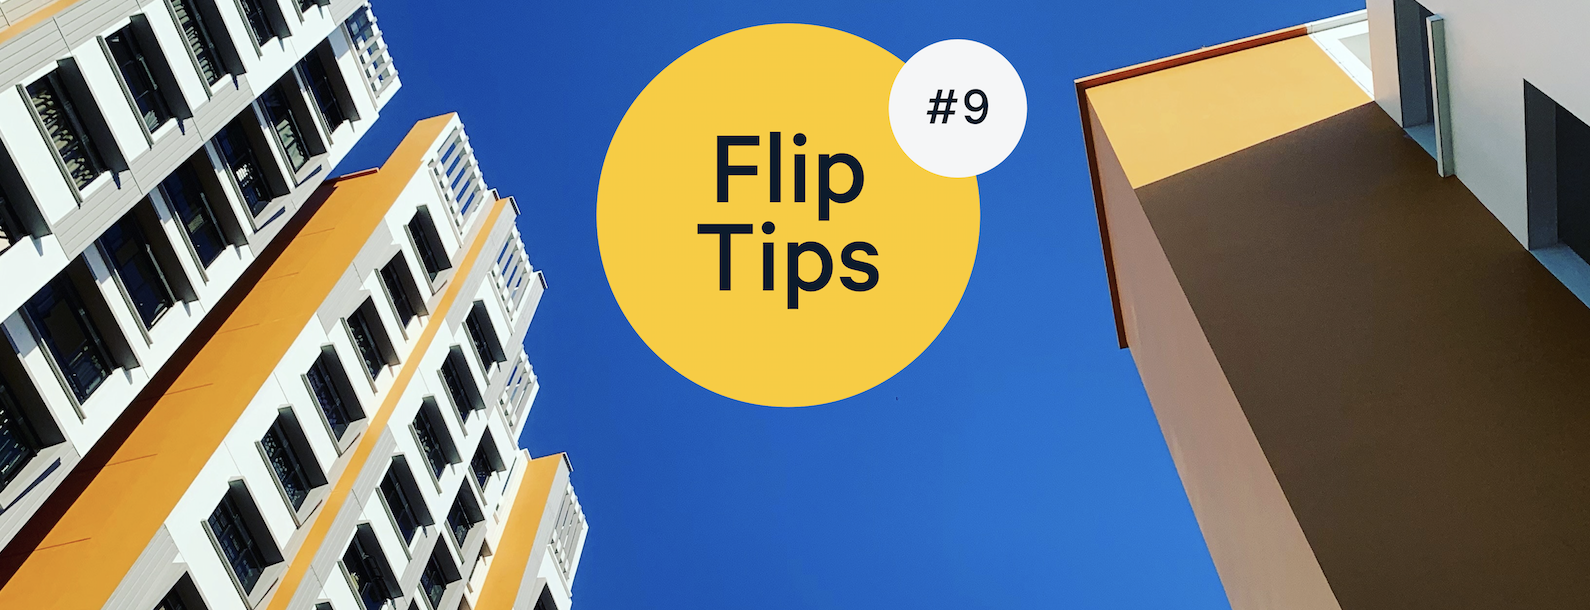 Flip Tips: What Are The Unique Flips You Have Done or Various Real Estate Niches? How Did You Find Yours?